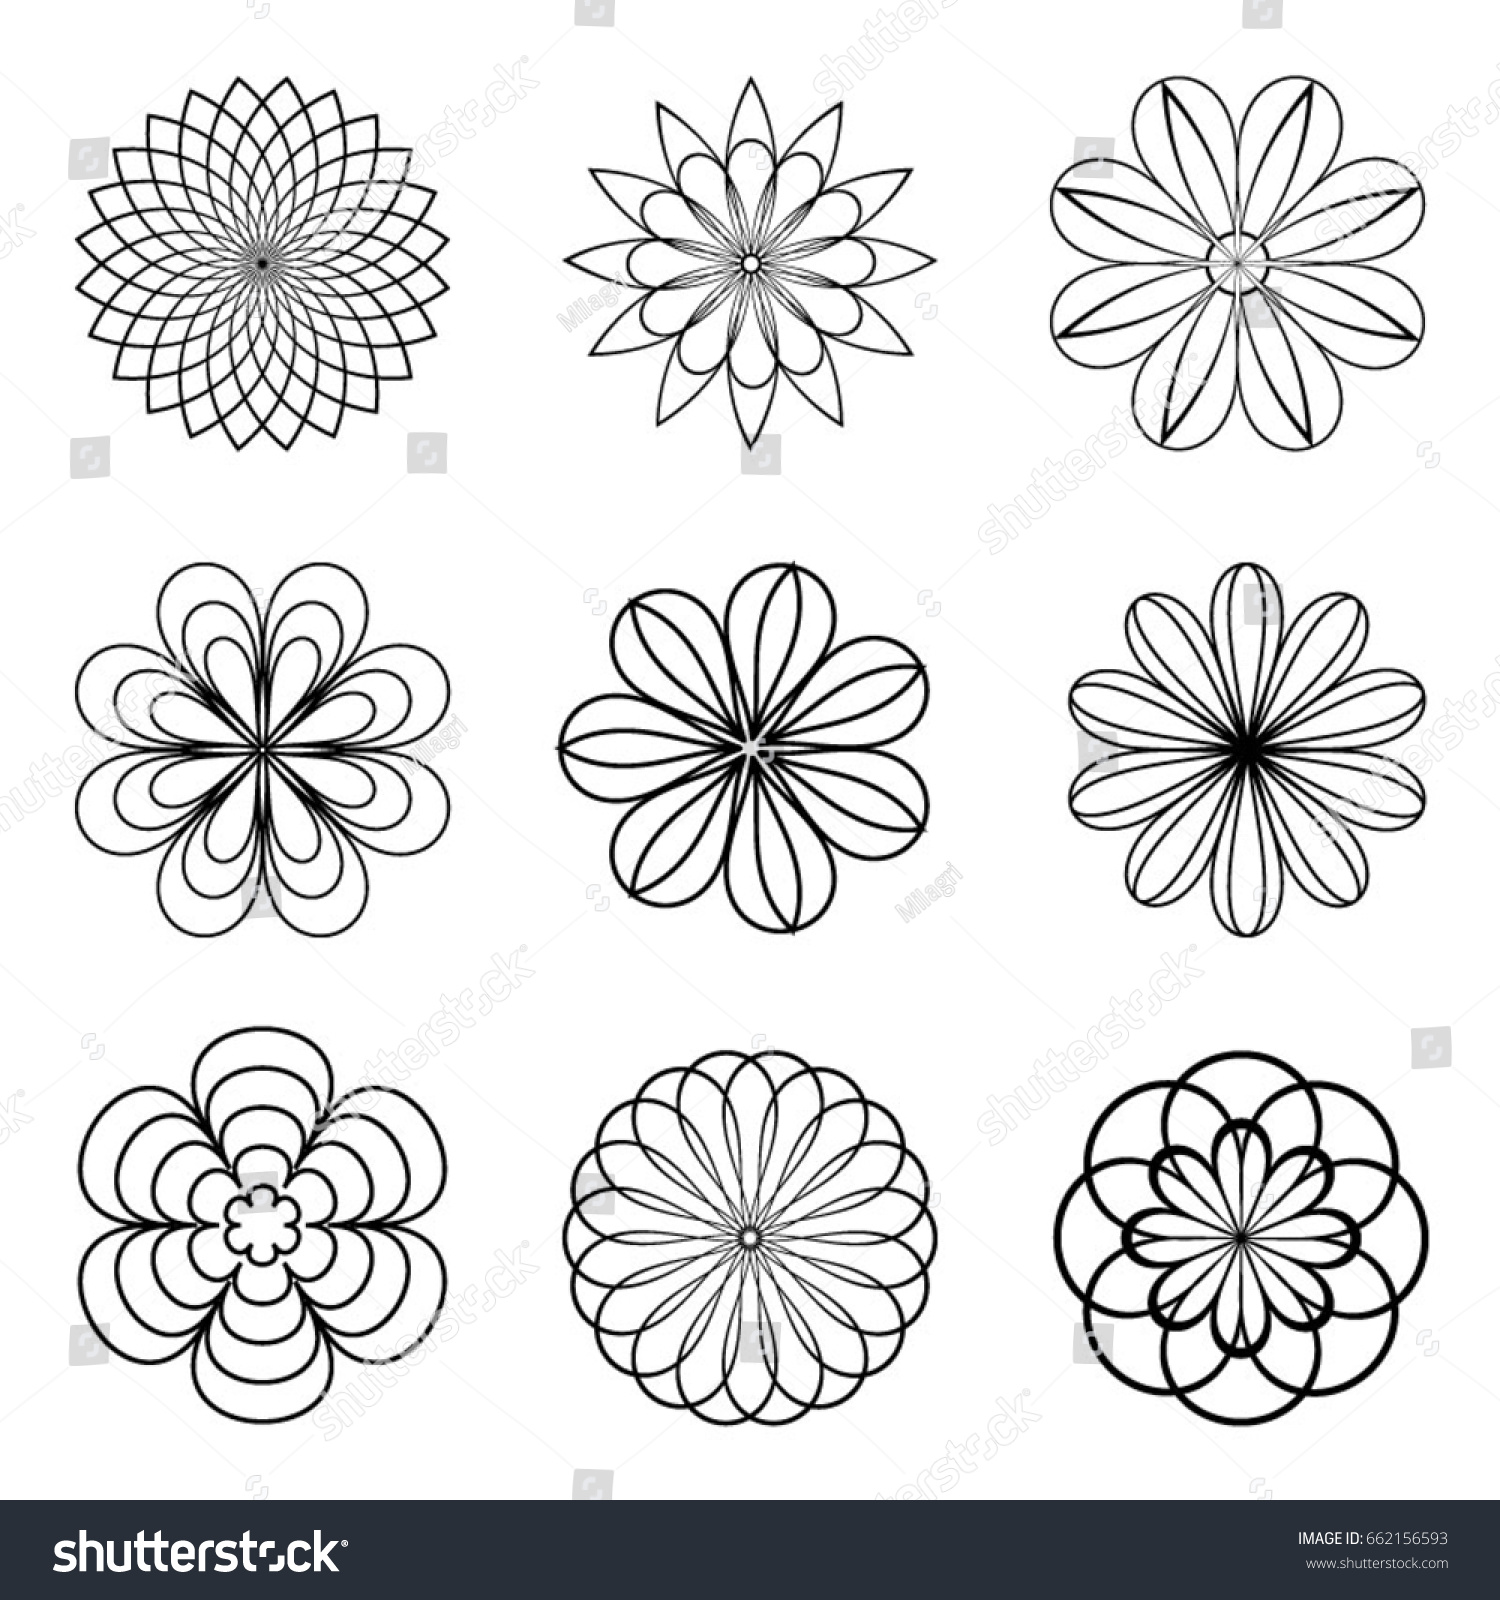 Set Monochrome Geometric Floral Patterns Stock Vector Royalty Free 662156593